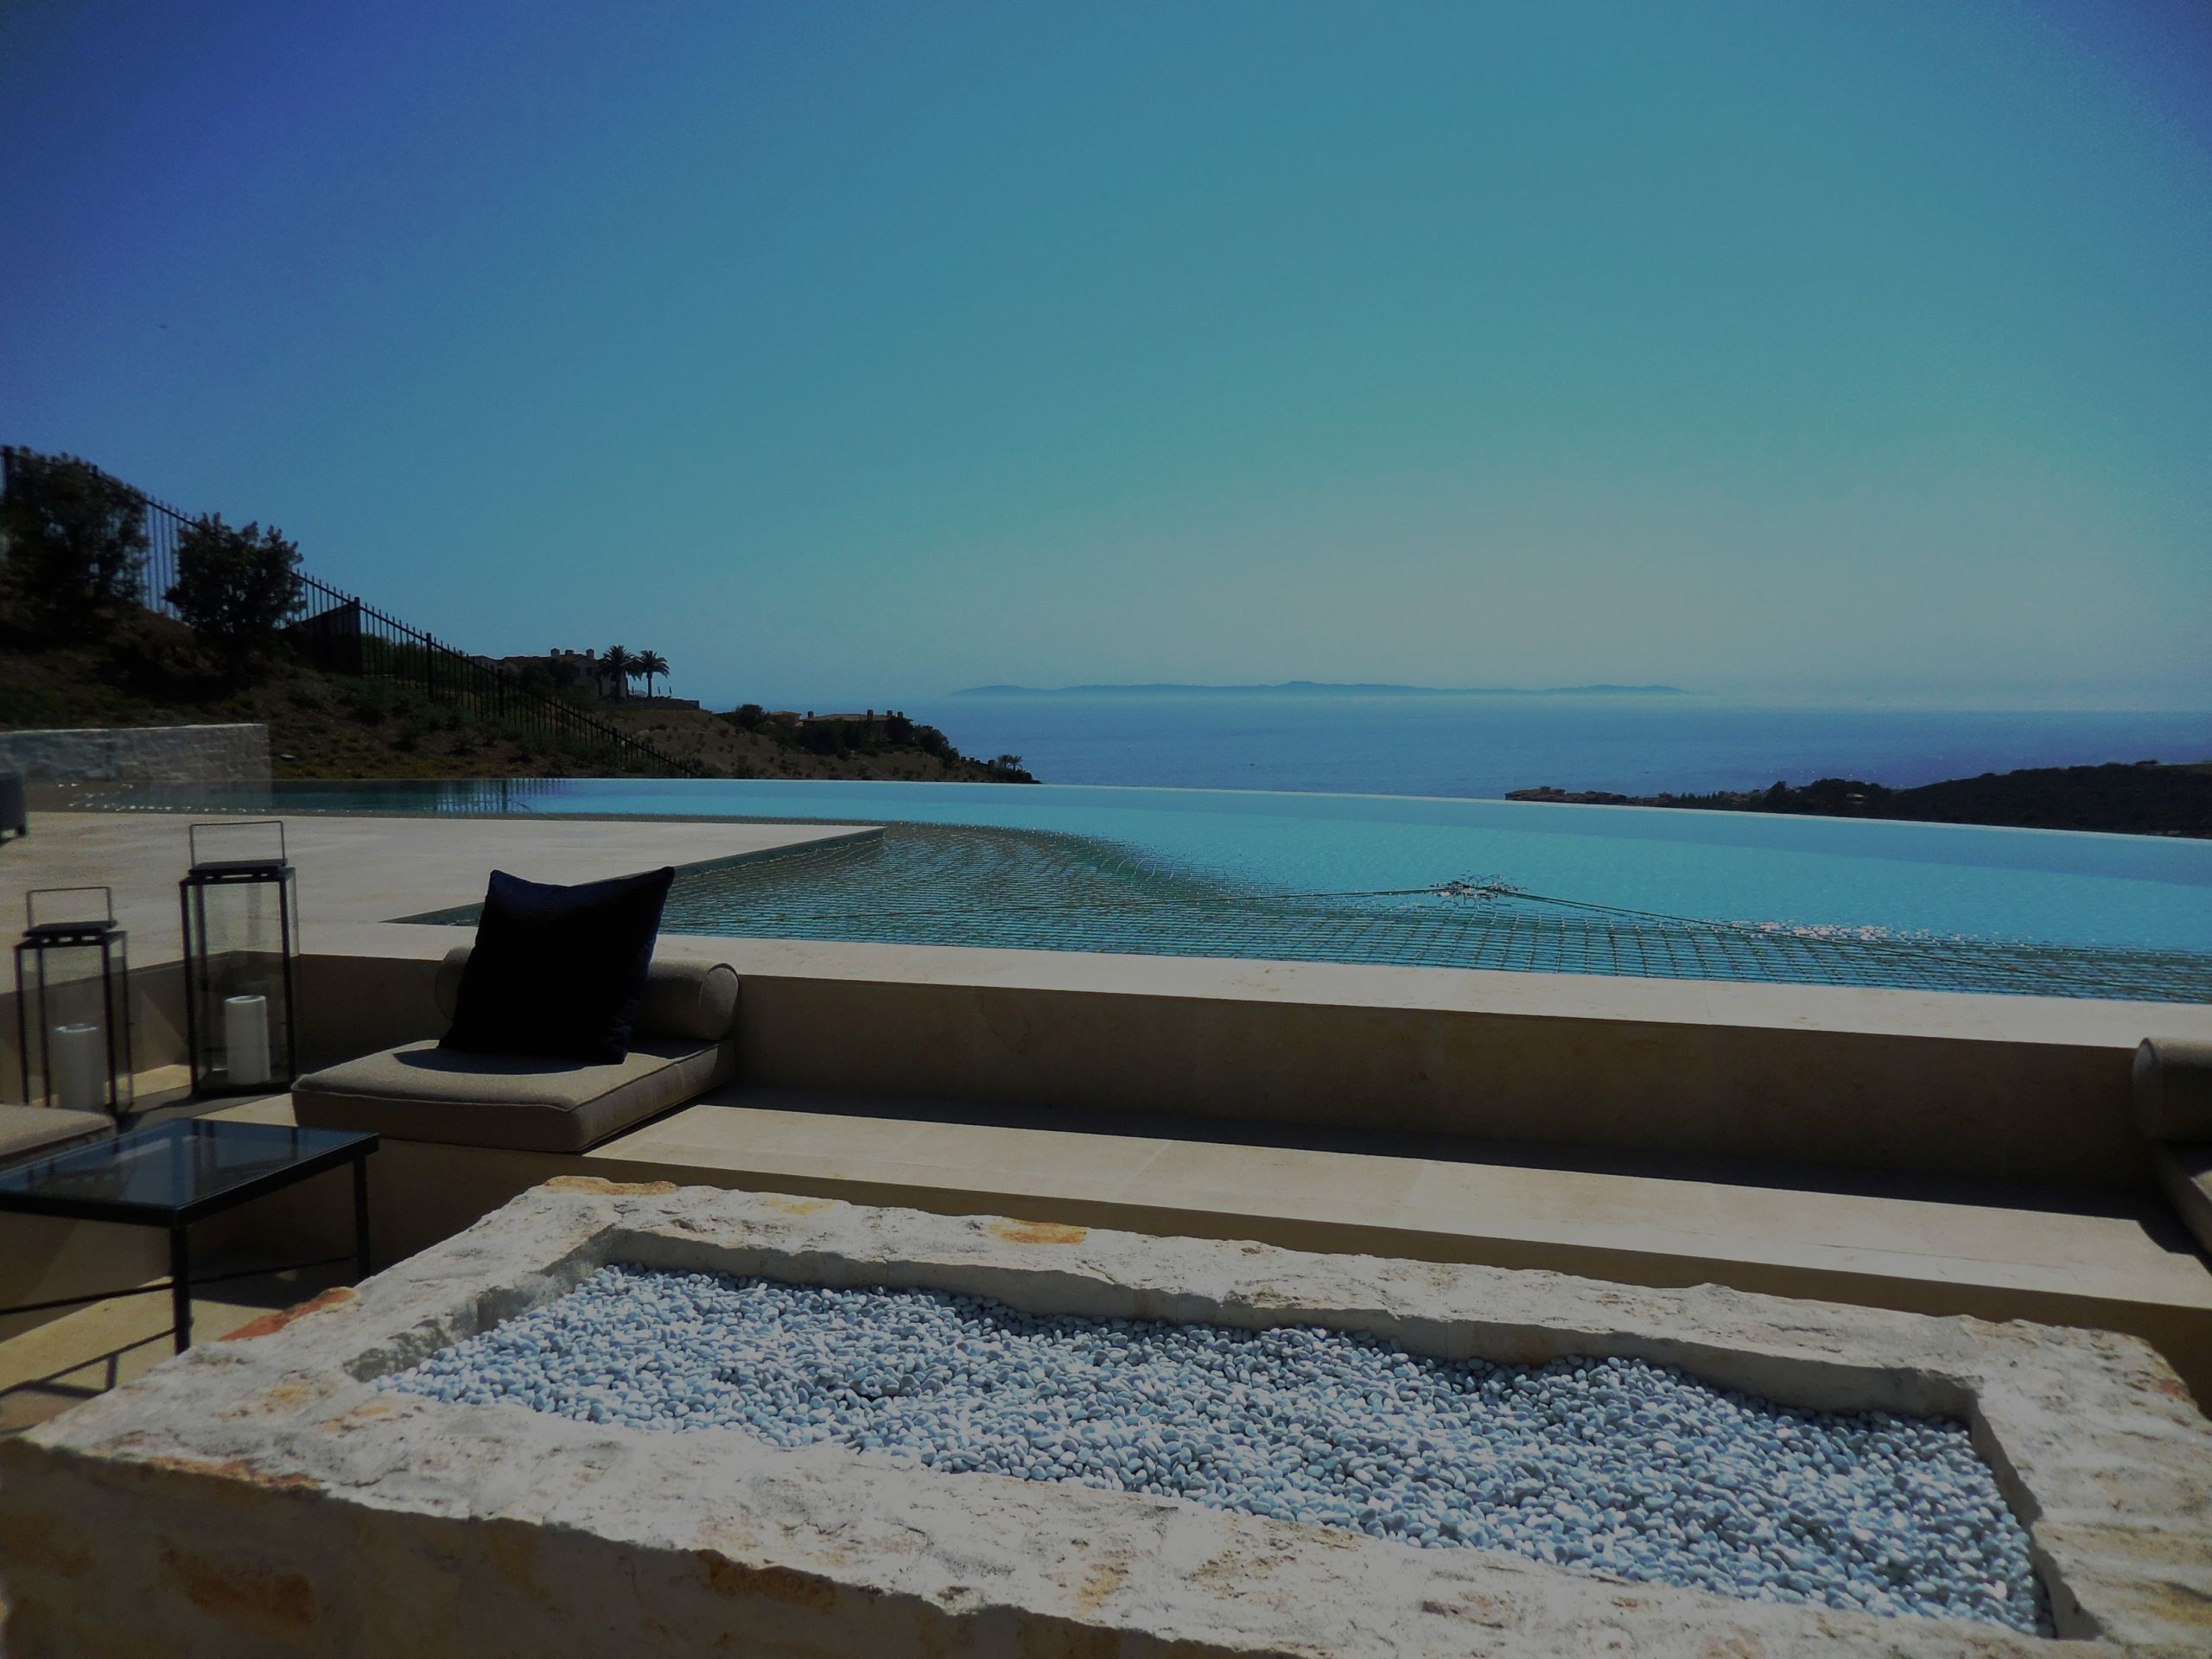 Coral Crest & Coral Canyon Crystal Cove Newport Coast | The New Home Company Luxury Homes | Bruce Clark Real Estate